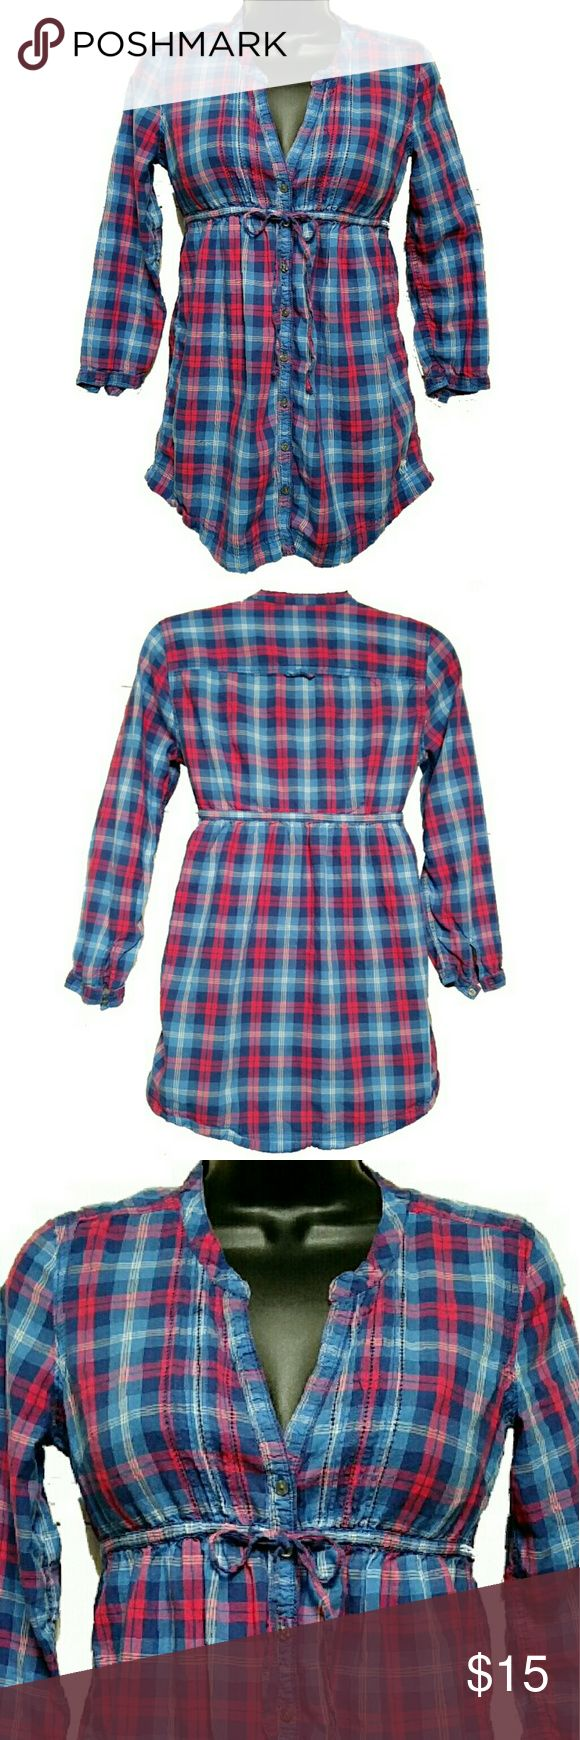 ABERCROMBIE Plaid Long Sleeve Tunic Blouse ABERCROMBIE plaid long sleeve blouse top. Blue, pink and white colors. Button down shirt. Empire waist with ties. Long sleeves with button cuffs. Abercrombie trademark logo embroidered on the shirt. Size X-small. Approximate measurements of the top are Shoulder 13 inches, Bust 36 inches, Length 28 inches, and Sleeve Length 18 inches. Excellent condition. Abercrombie & Fitch Tops